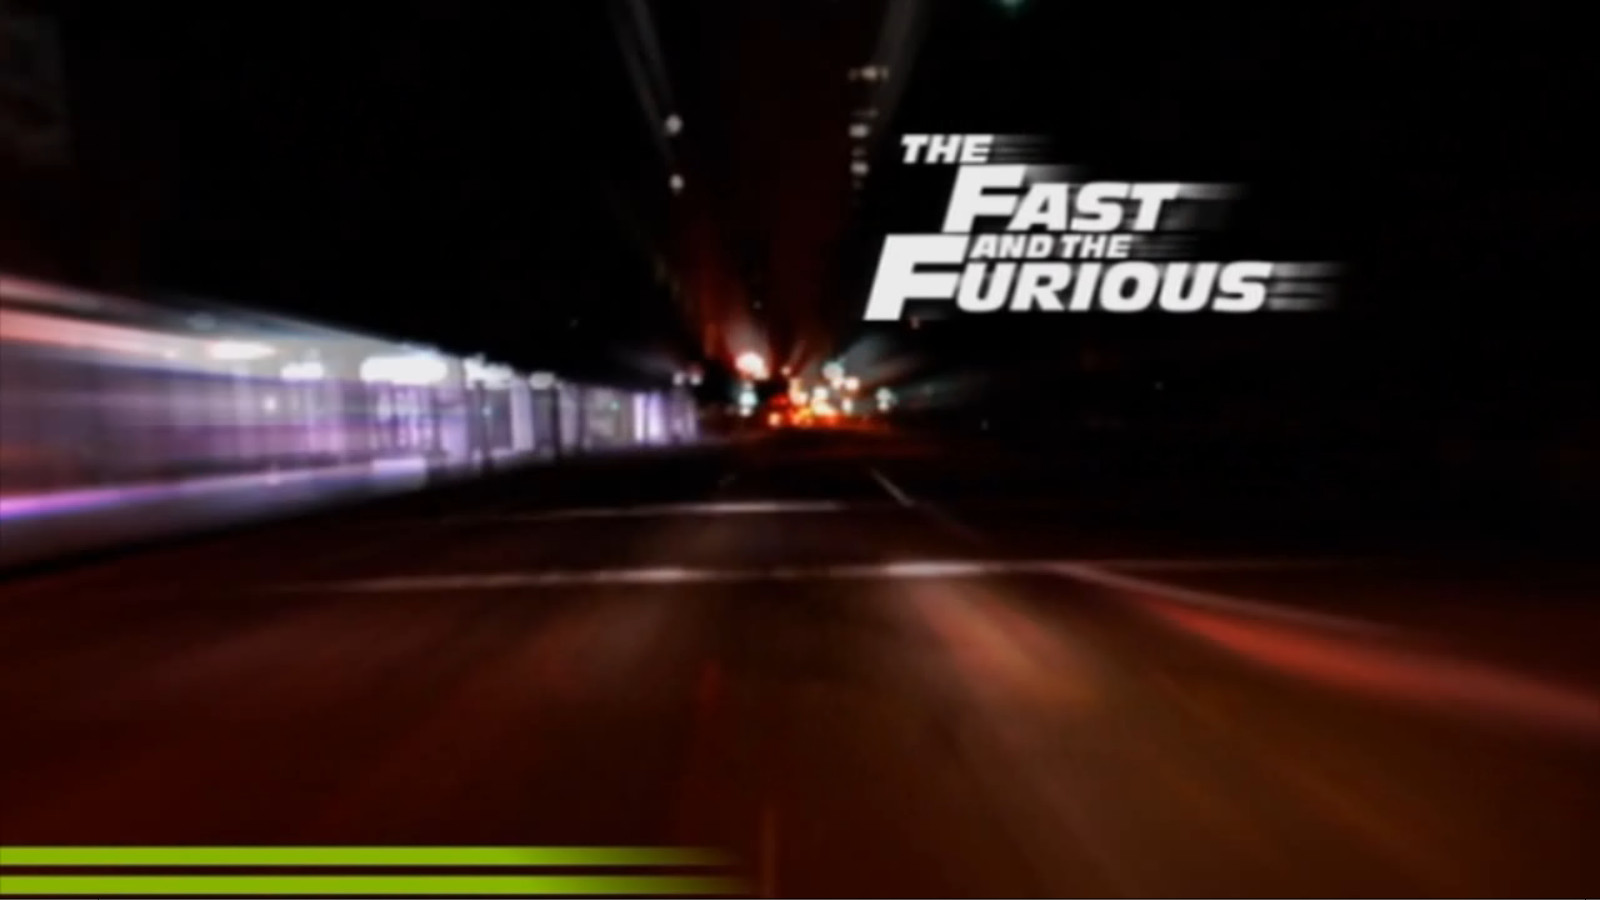 The Fast the Furious Dream